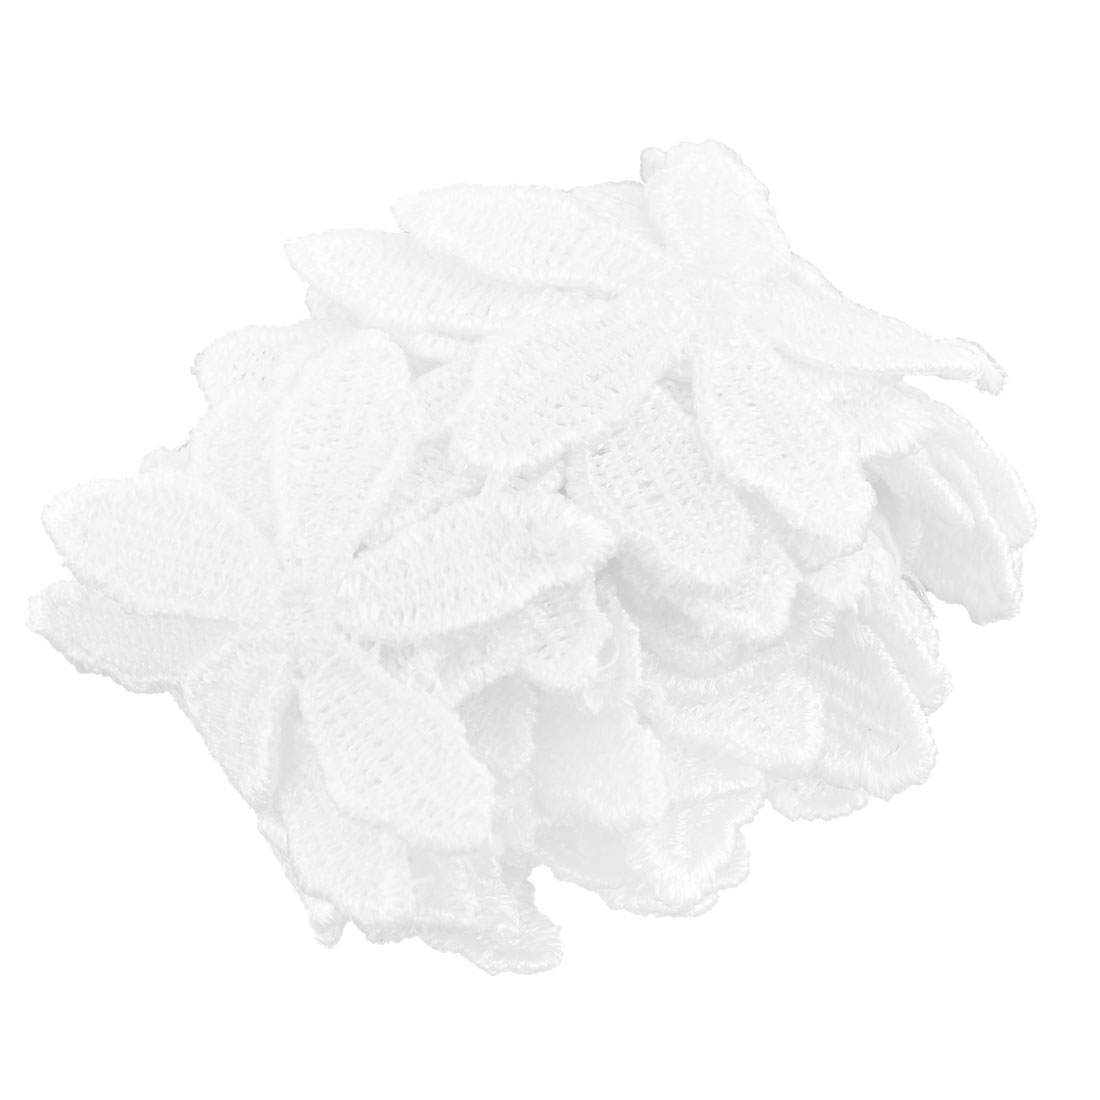 Home Polyester Fower Design Sewing Lace Trim Applique White 1.8 Inches Width